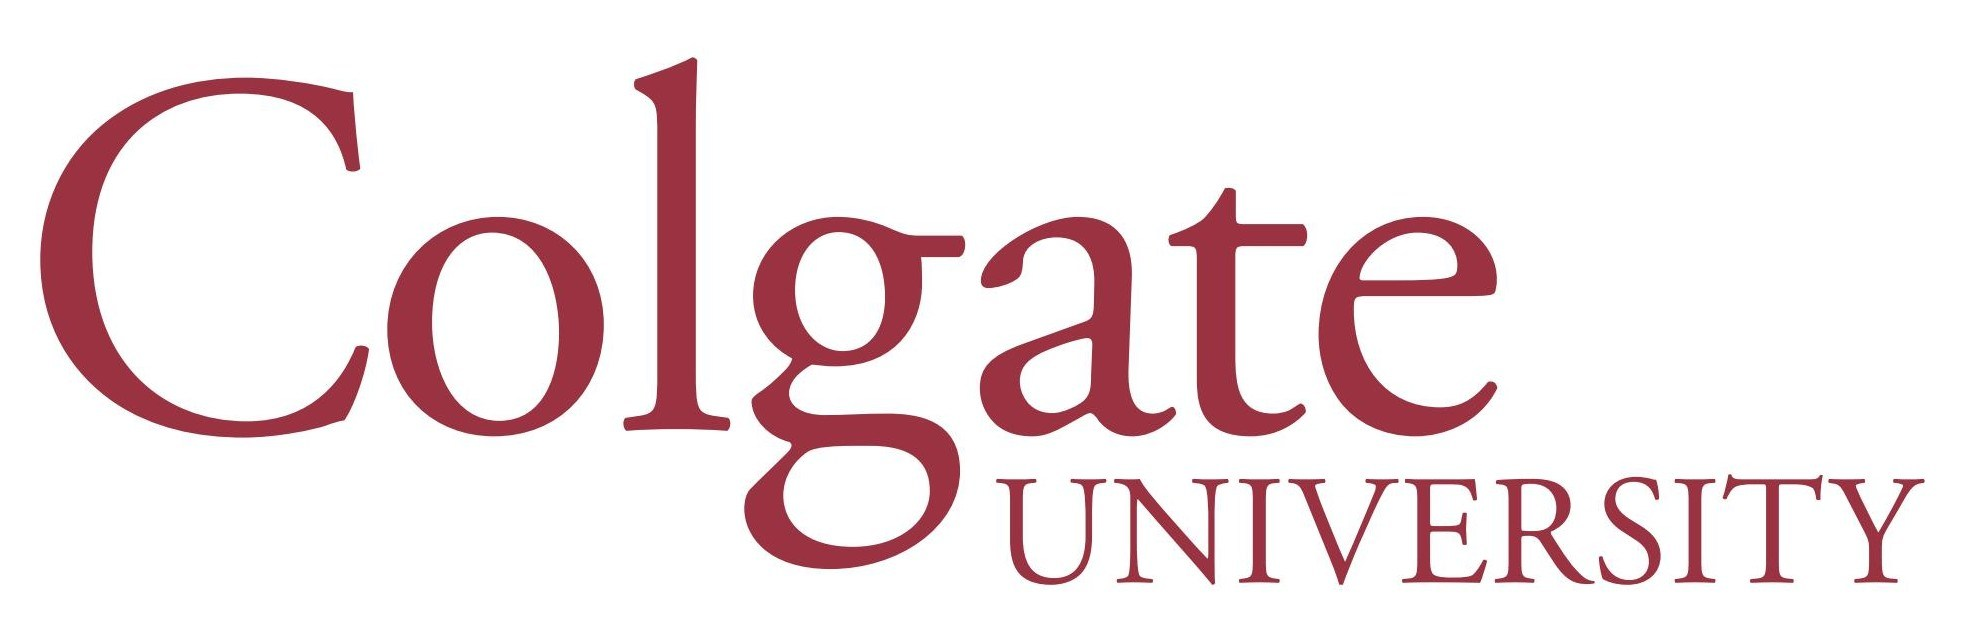 Colgate University Logo and Seals Vector EPS Free Download, Logo, Icons, Brand Emblems